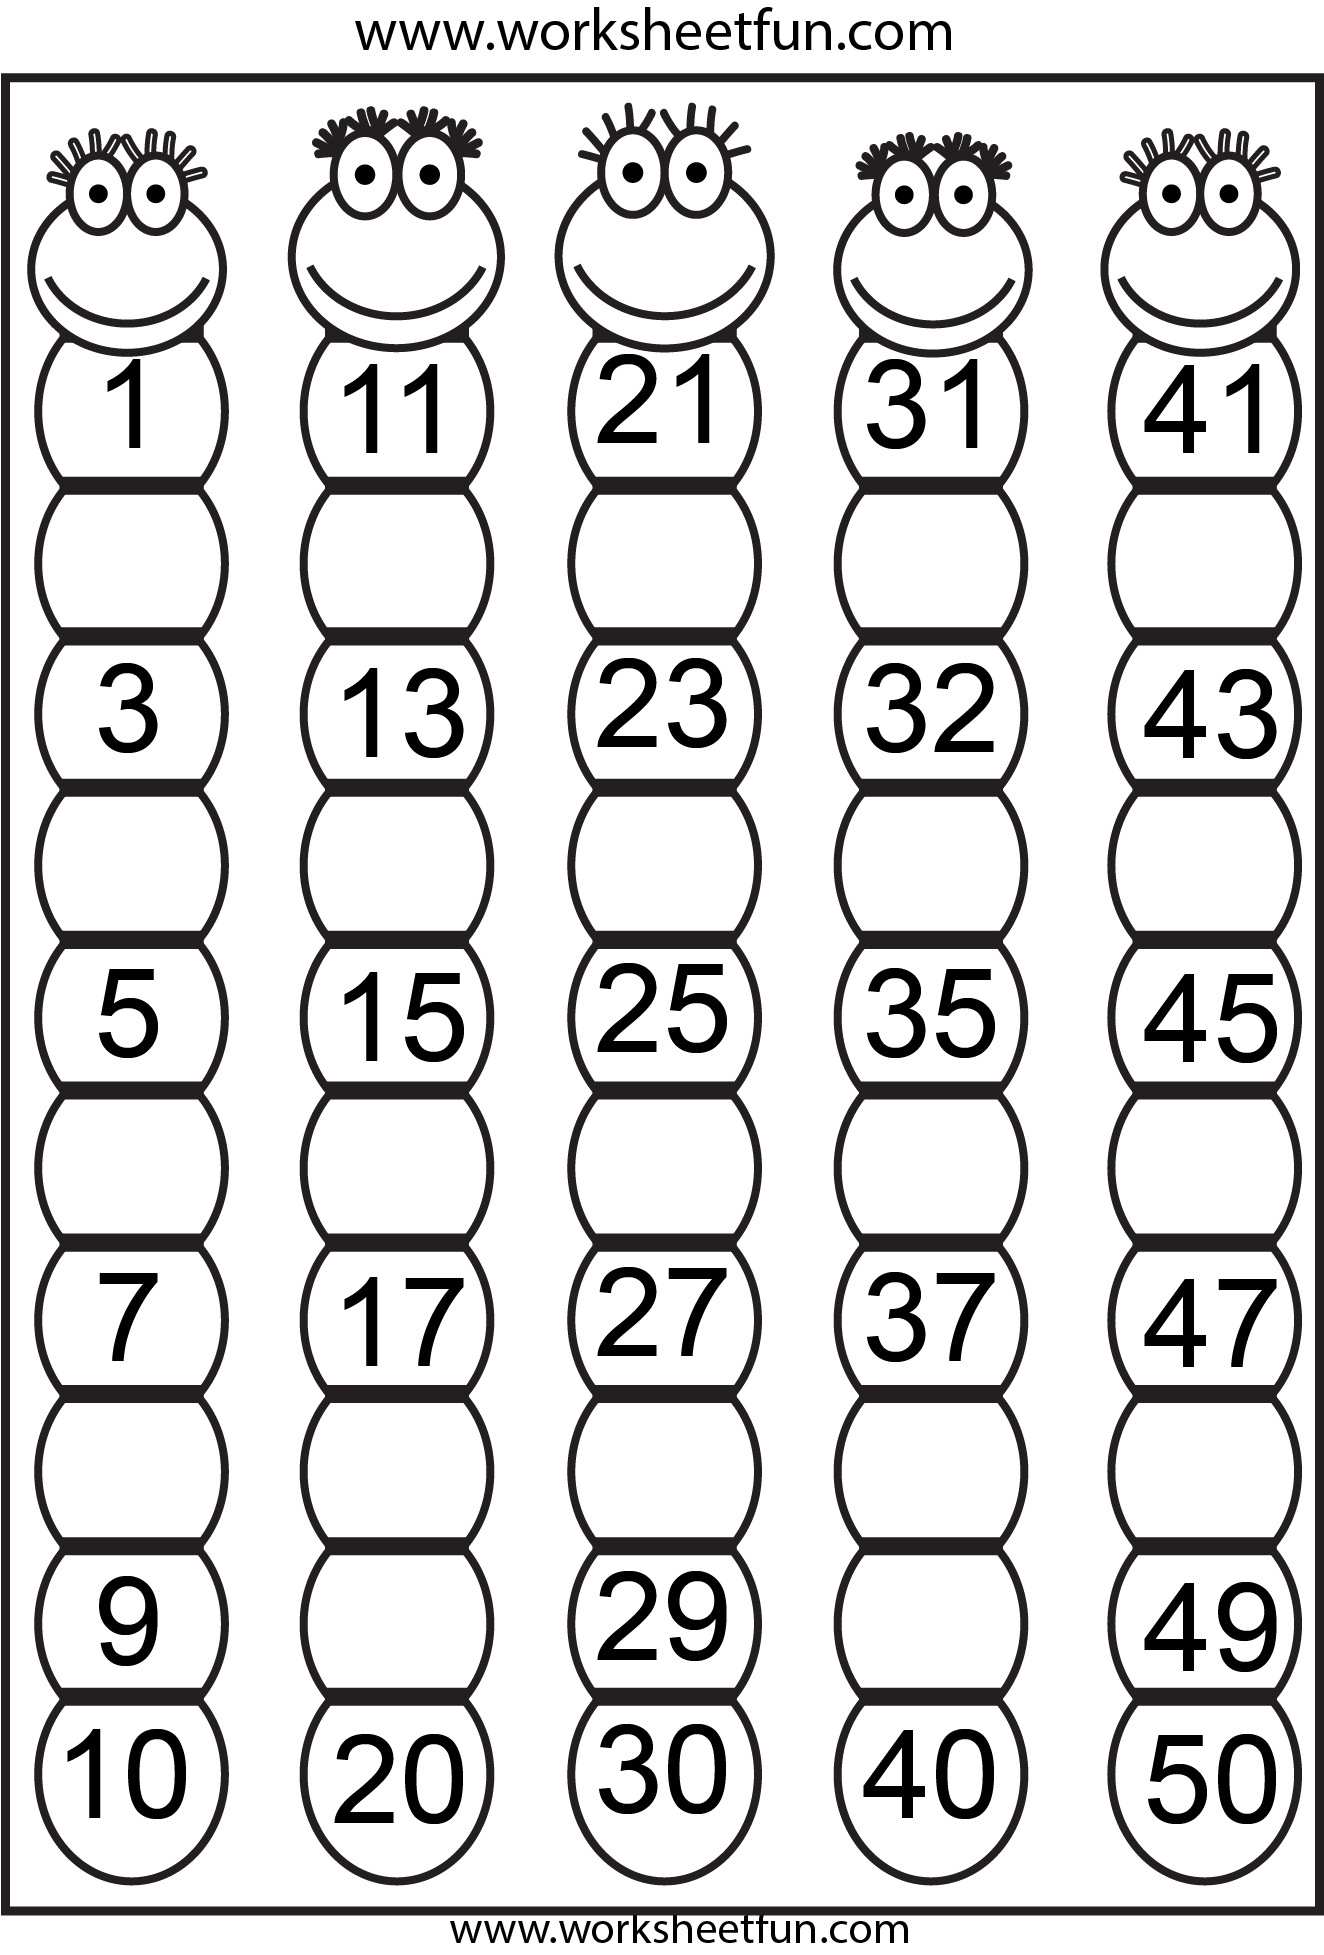 7 Best Images Of Number Sheets 1 To 50 Printable